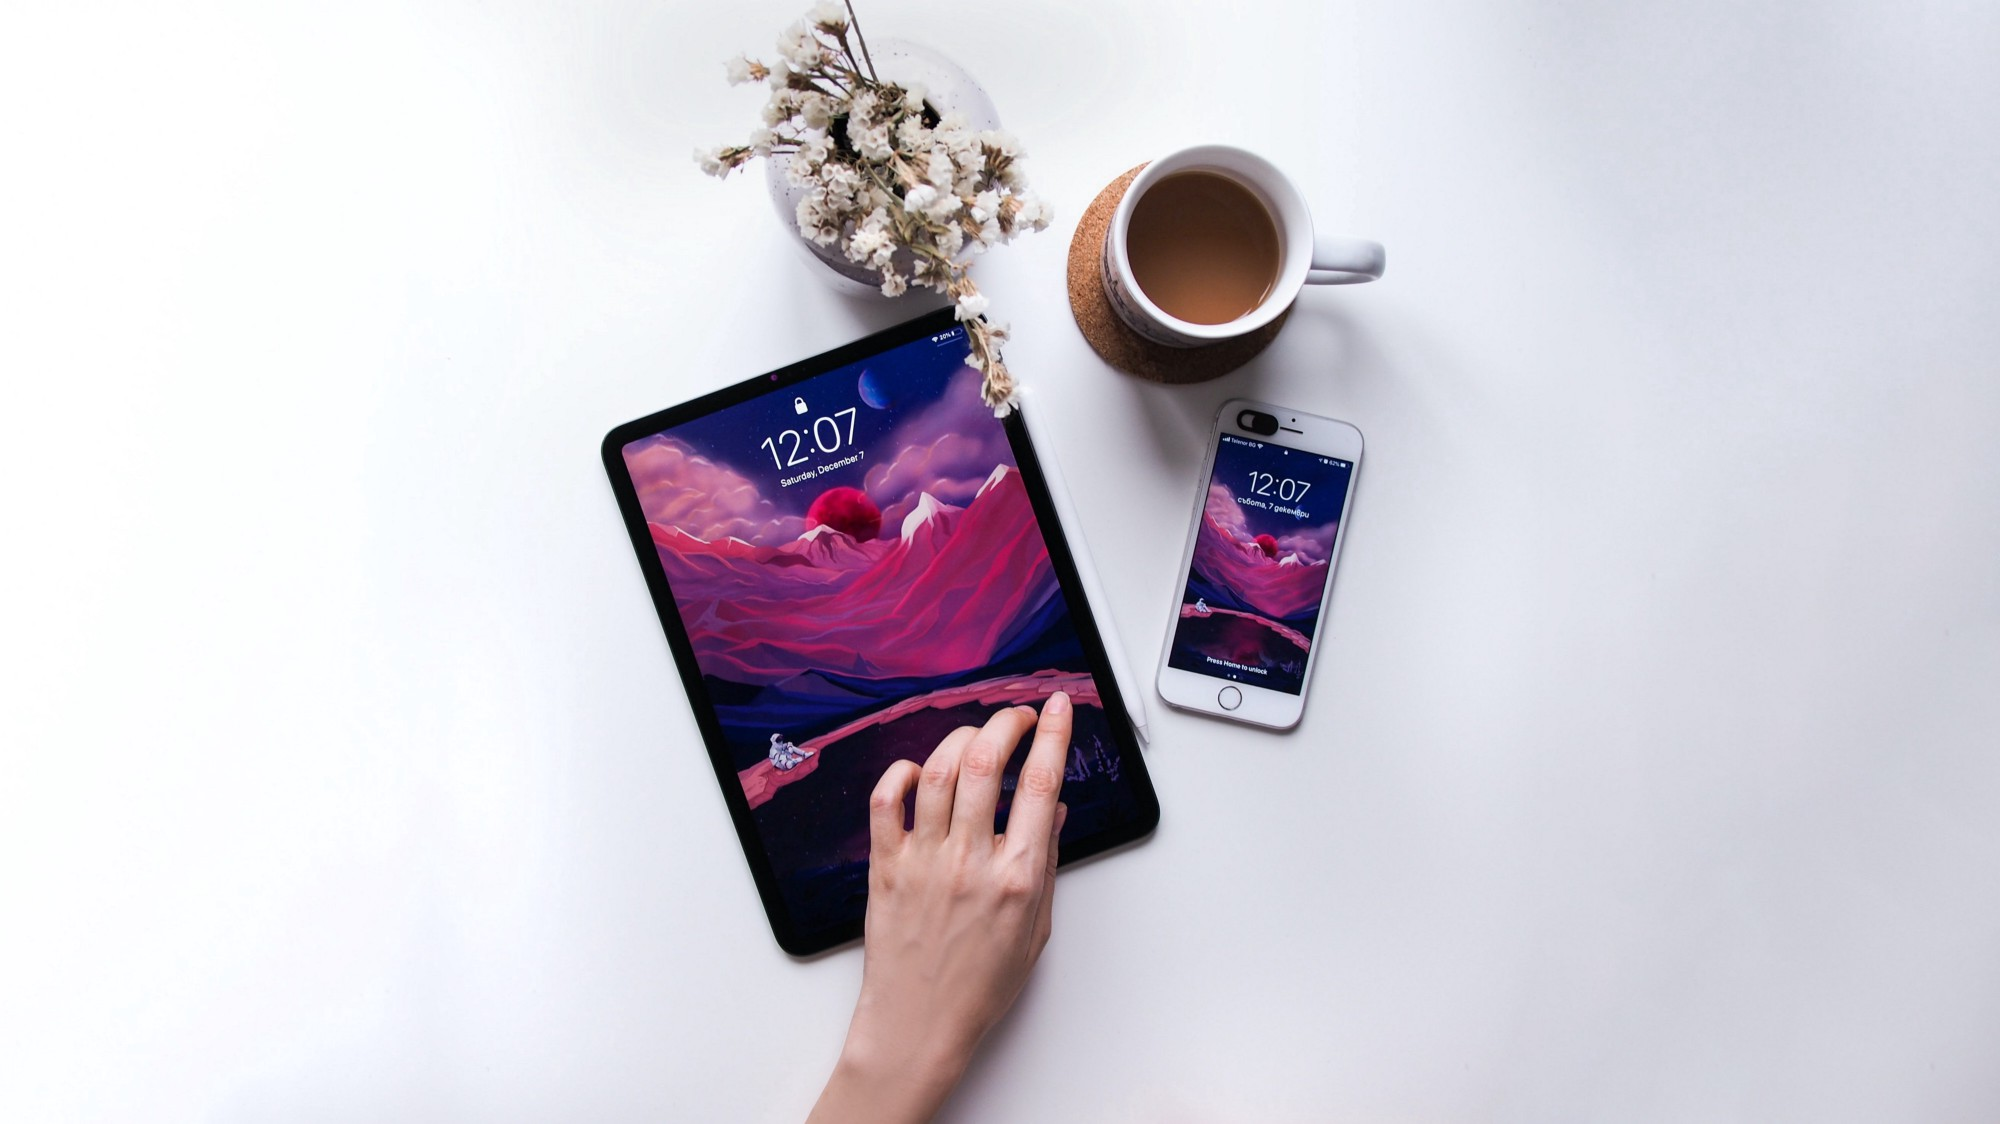 Tablet & smartphone with flowers and cup of coffee